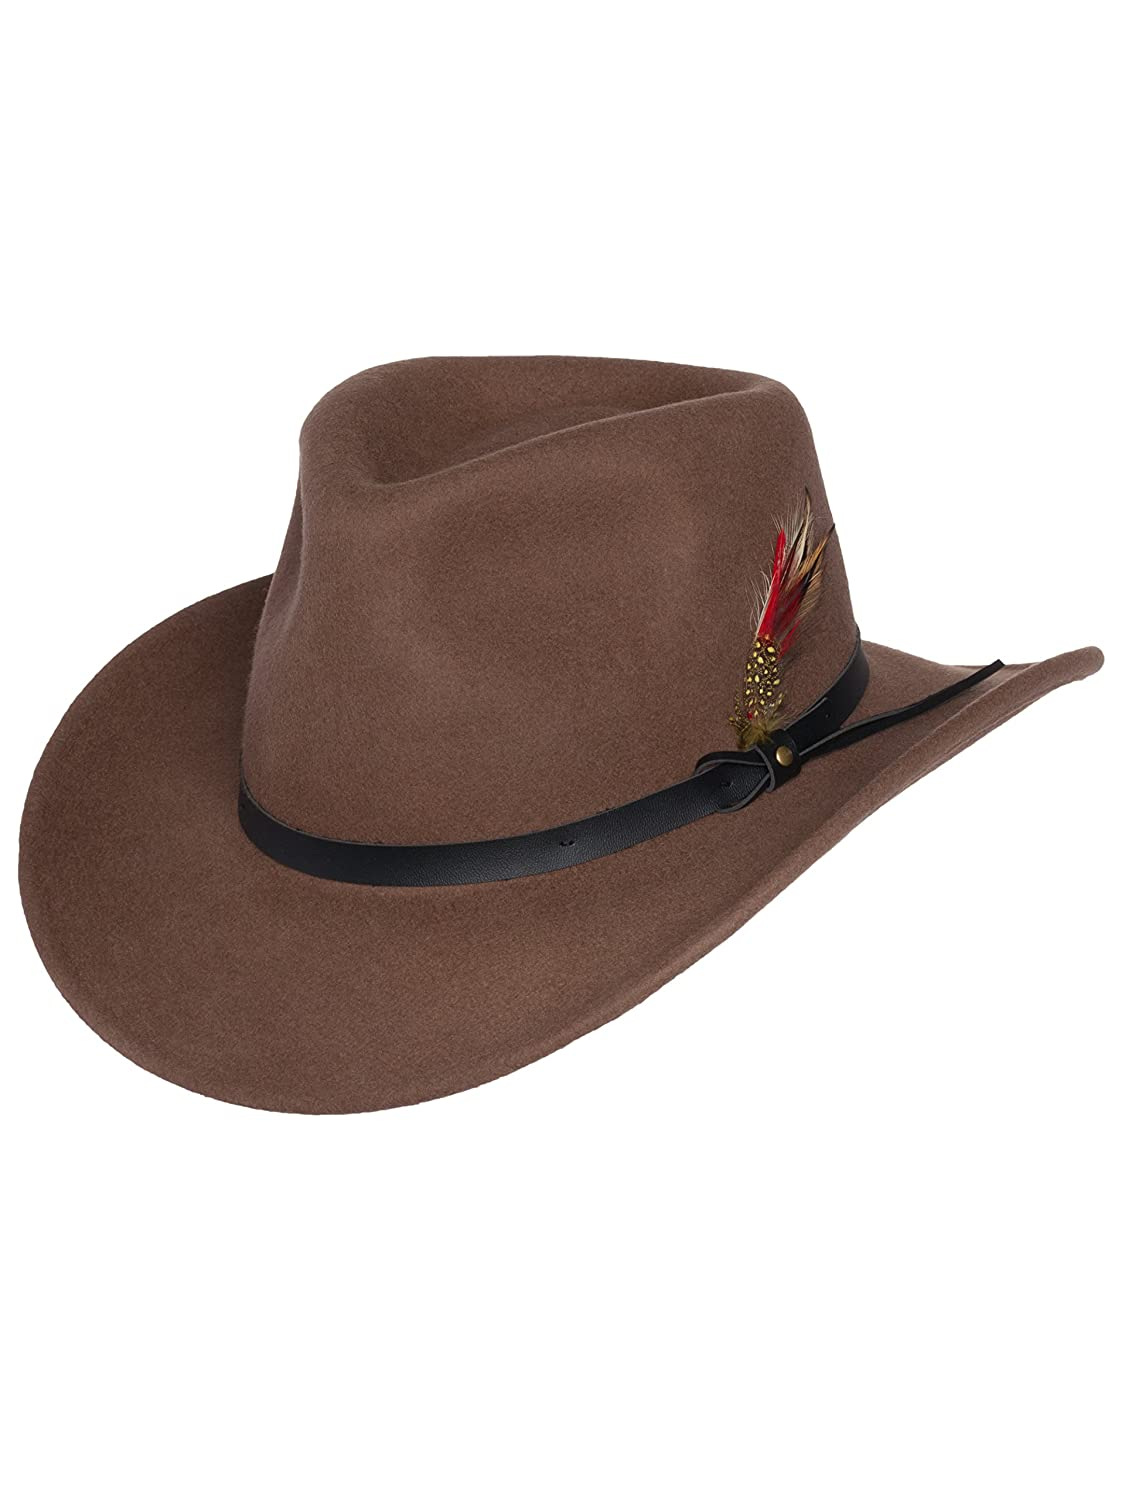 e91e8d407 Men's Outback Wool Cowboy Hat Montana Pecan Brown Crushable Western Felt by  Silver Canyon, Pecan, XX-Large